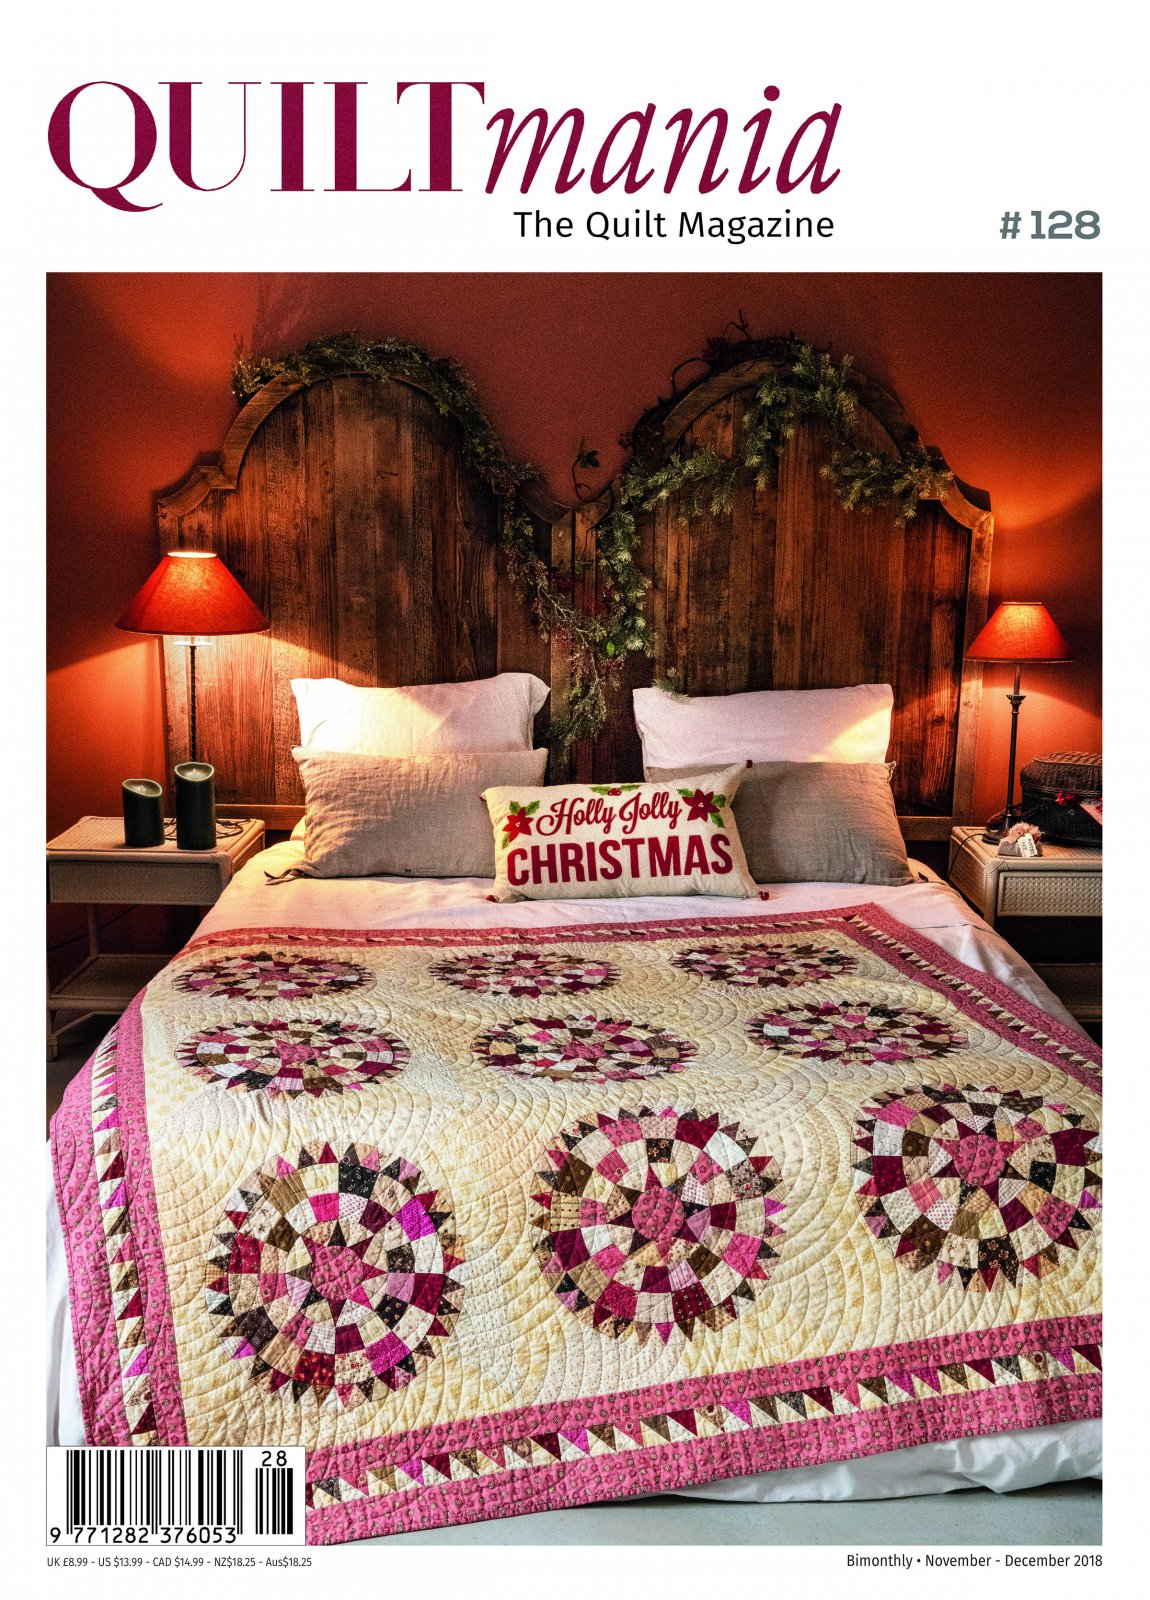 Quiltmania #128 Nov./Dec. 2018